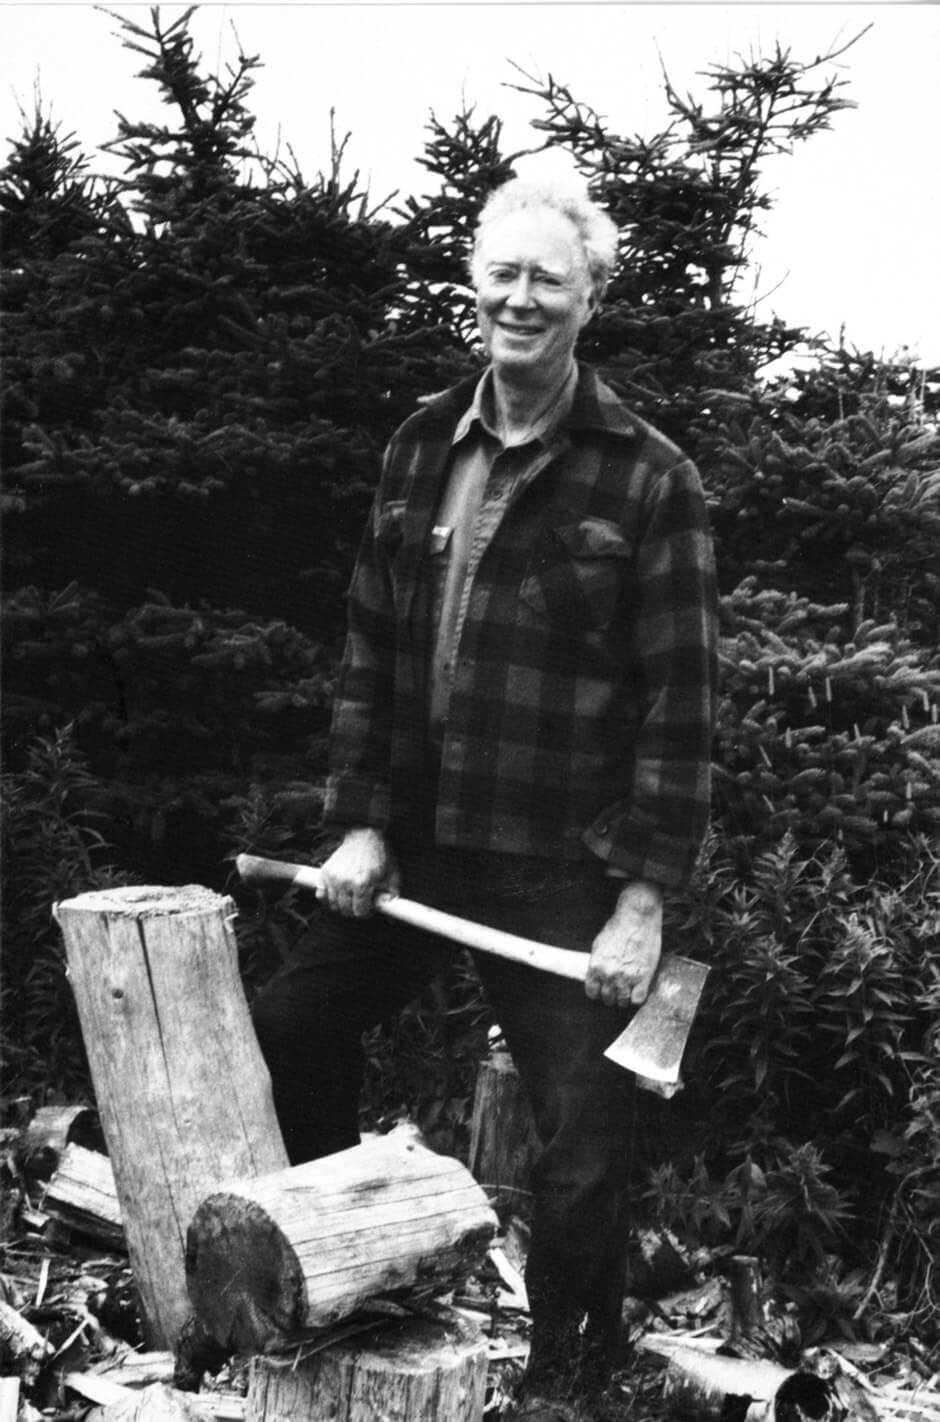 Art Canada Institute, Michael Snow, Michael Snow chopping wood in Newfoundland, 1994